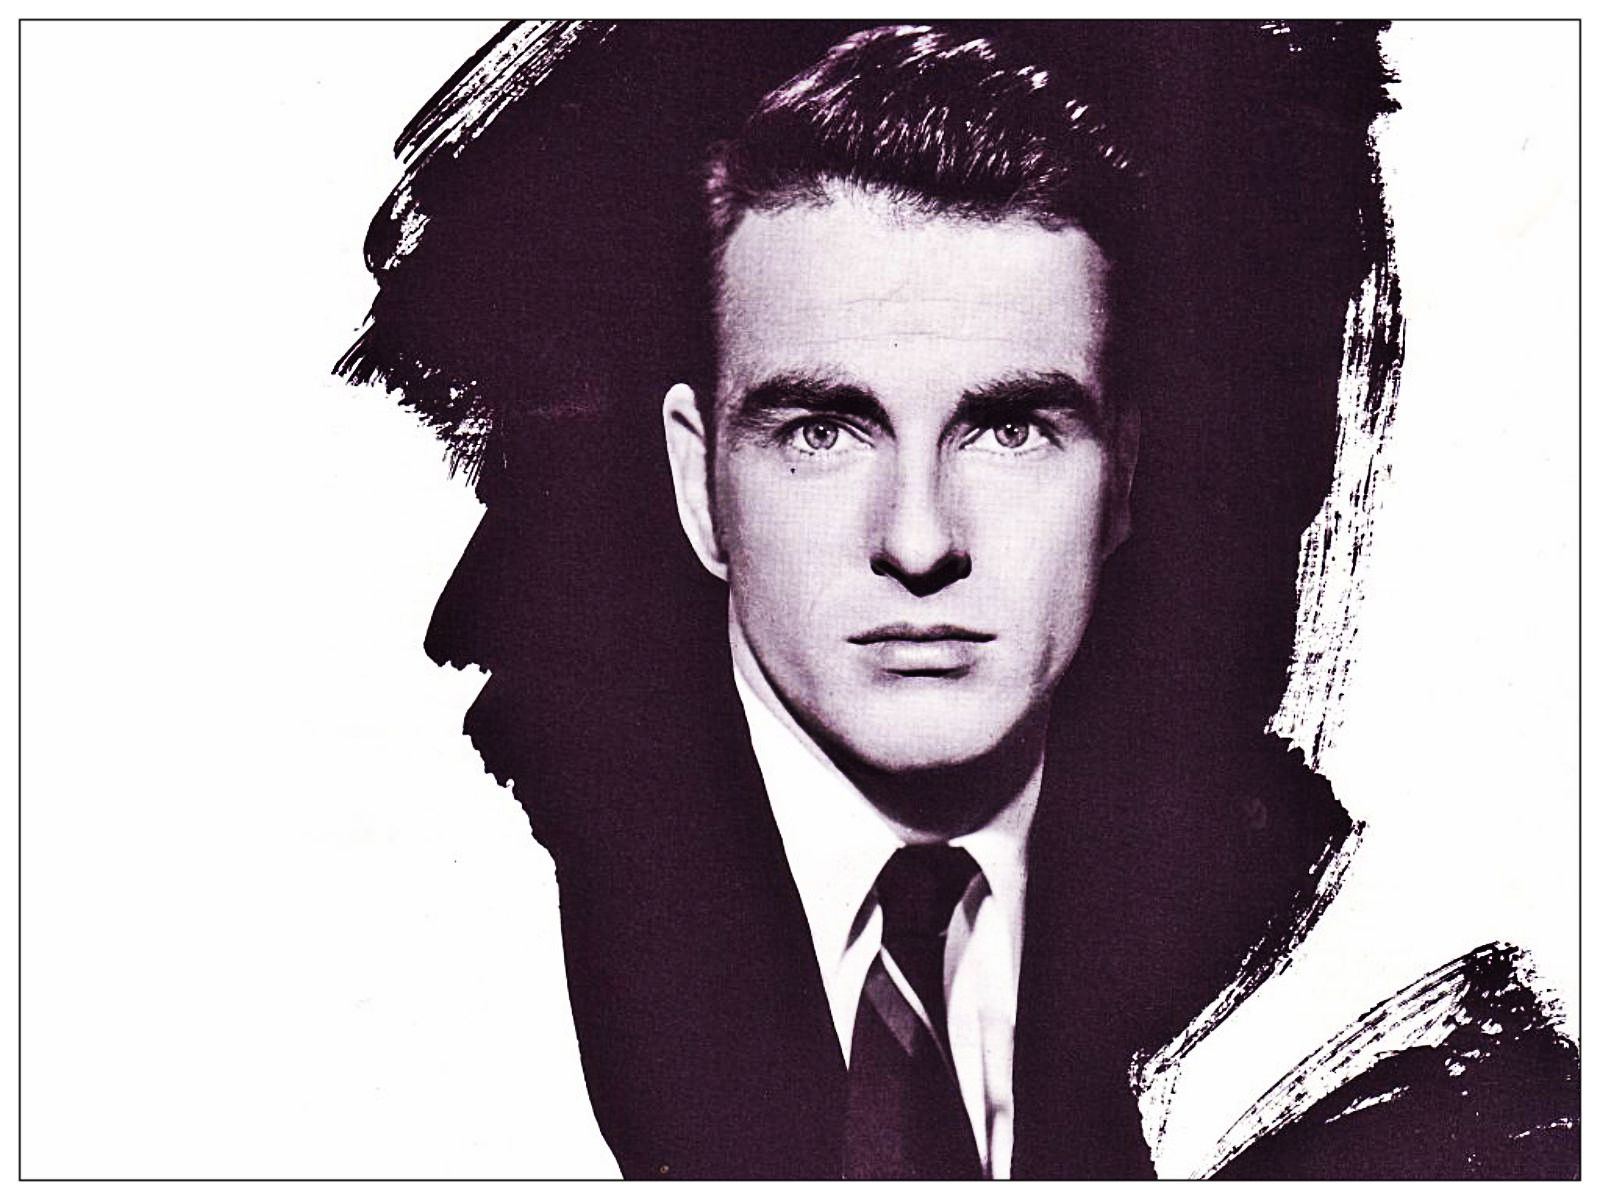 montgomery clift interviewmontgomery clift parents, montgomery clift photos, montgomery clift nndb, montgomery clift car, montgomery clift nuremberg, montgomery clift wiki, montgomery clift rock hudson, montgomery clift, montgomery clift death, montgomery clift photos after accident, montgomery clift biopic, montgomery clift before and after, montgomery clift quotes, montgomery clift matt bomer, montgomery clift interview, montgomery clift tumblr, montgomery clift documentary, montgomery clift red river, montgomery clift bio, montgomery clift imdb